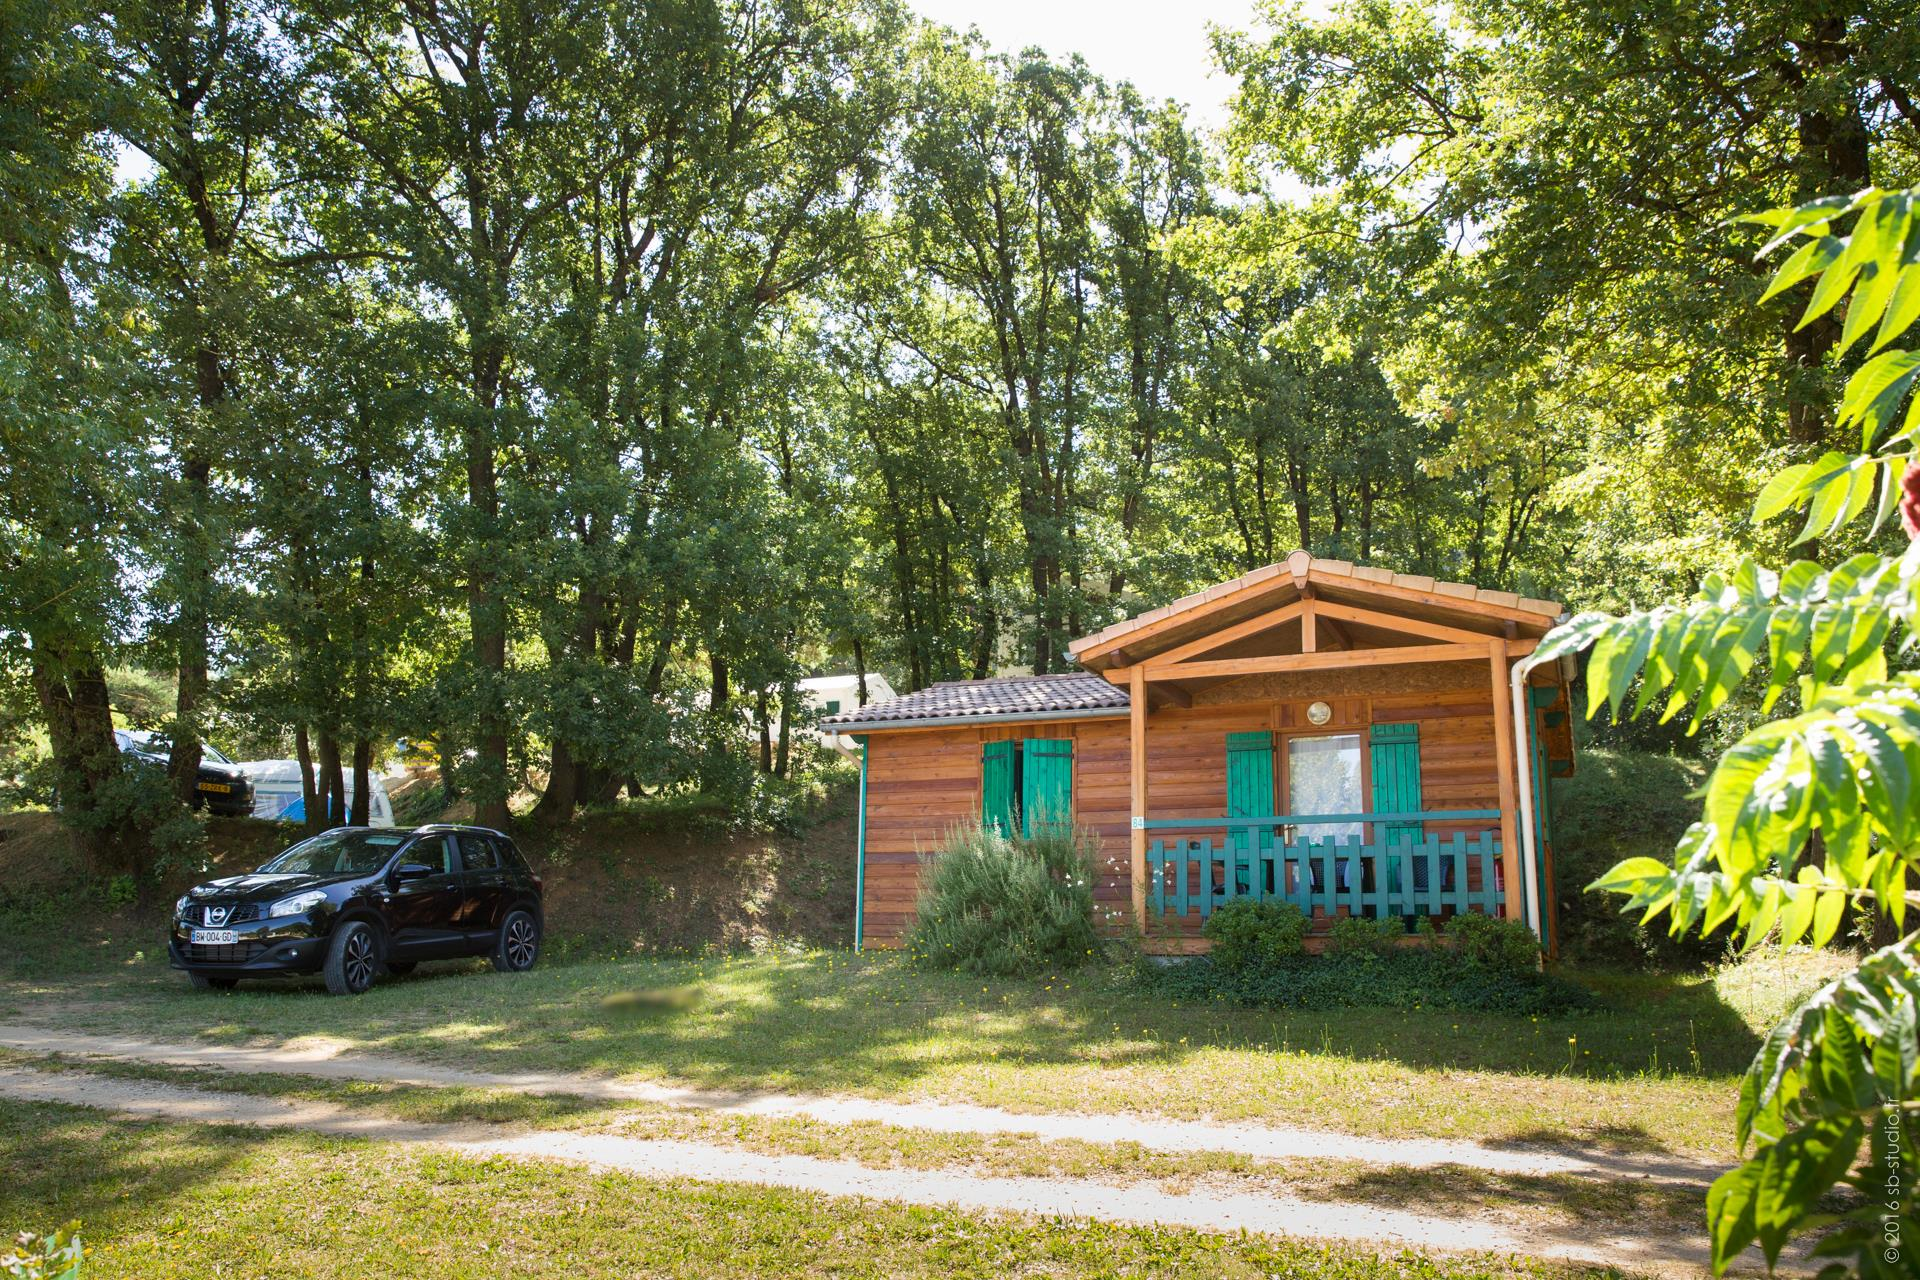 Accommodation - Chalet 2 Rooms, Covered Terrace - Domaine la Garenne